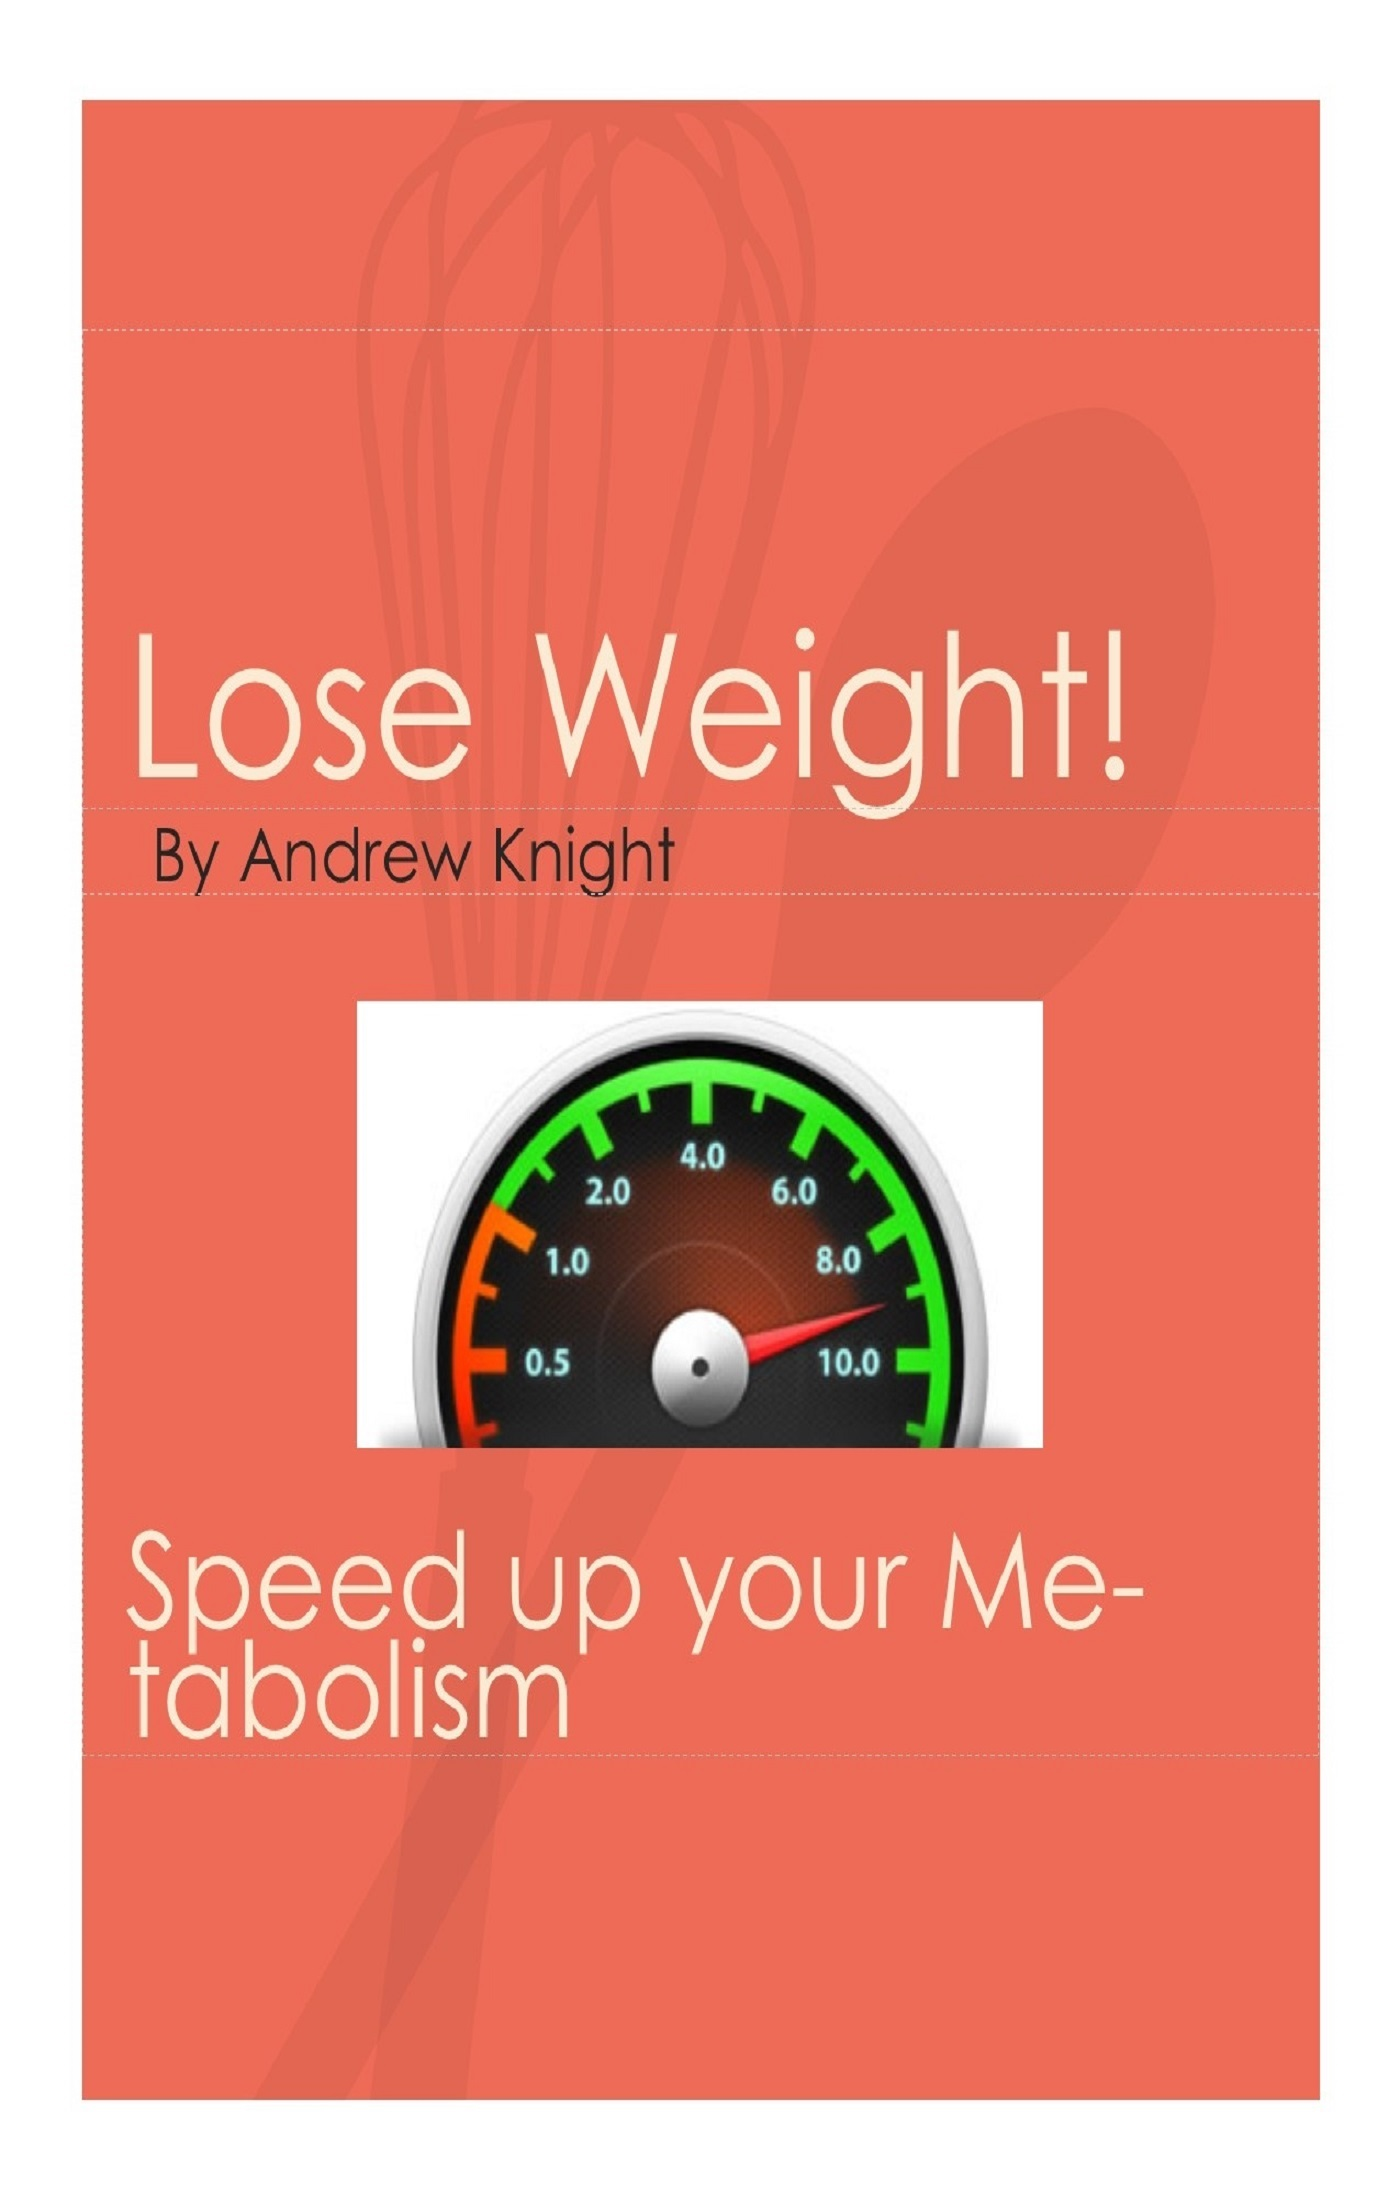 Lose Weight - Speed Up Your Metabolism, an Ebook by Andrew Knight